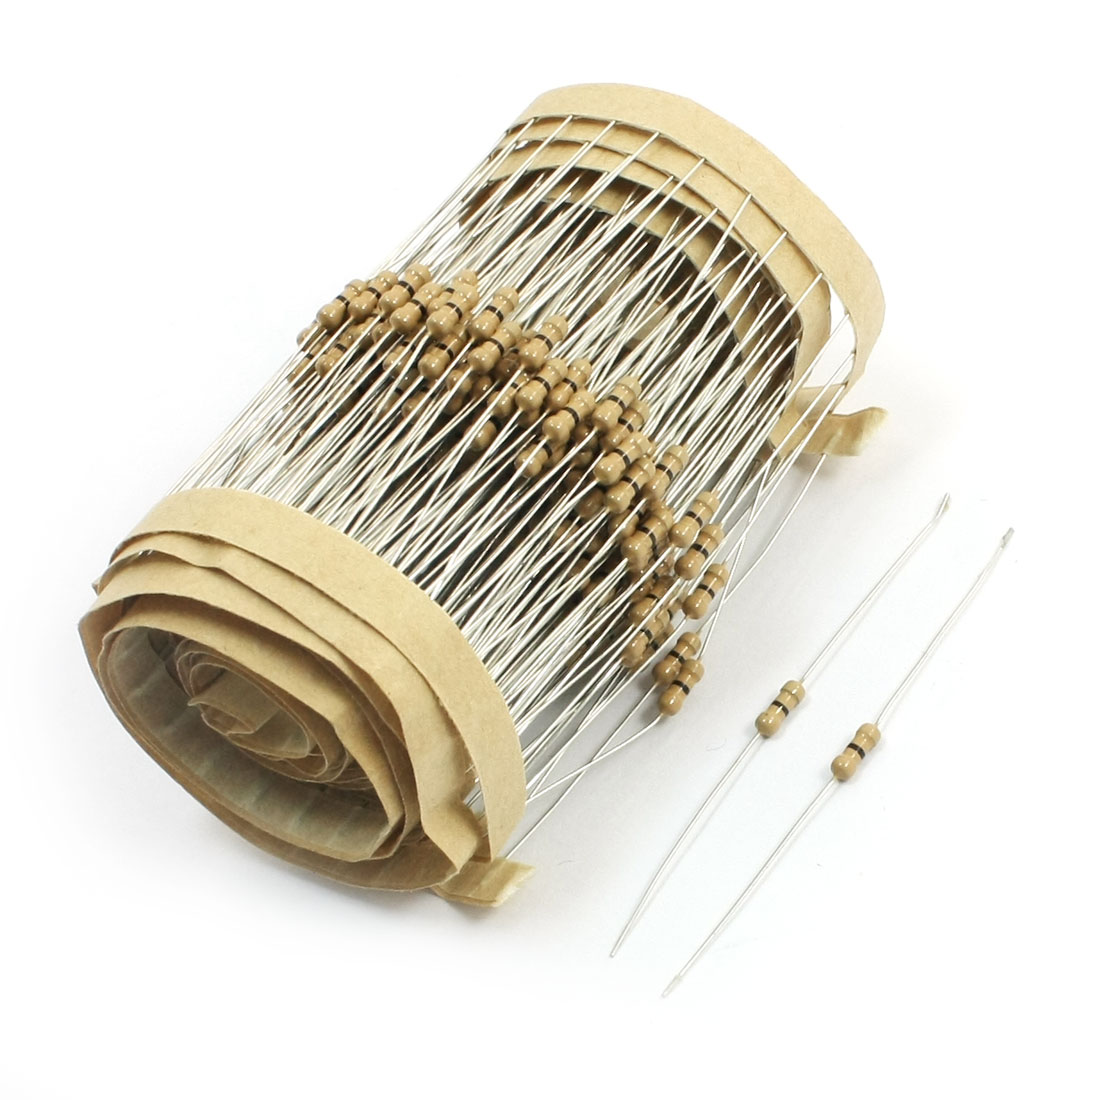 0 Ohm Resistance 0.25W Power Axial Lead Type Through Hole Mounting Carbon Film Fixed Resistors 300Pcs